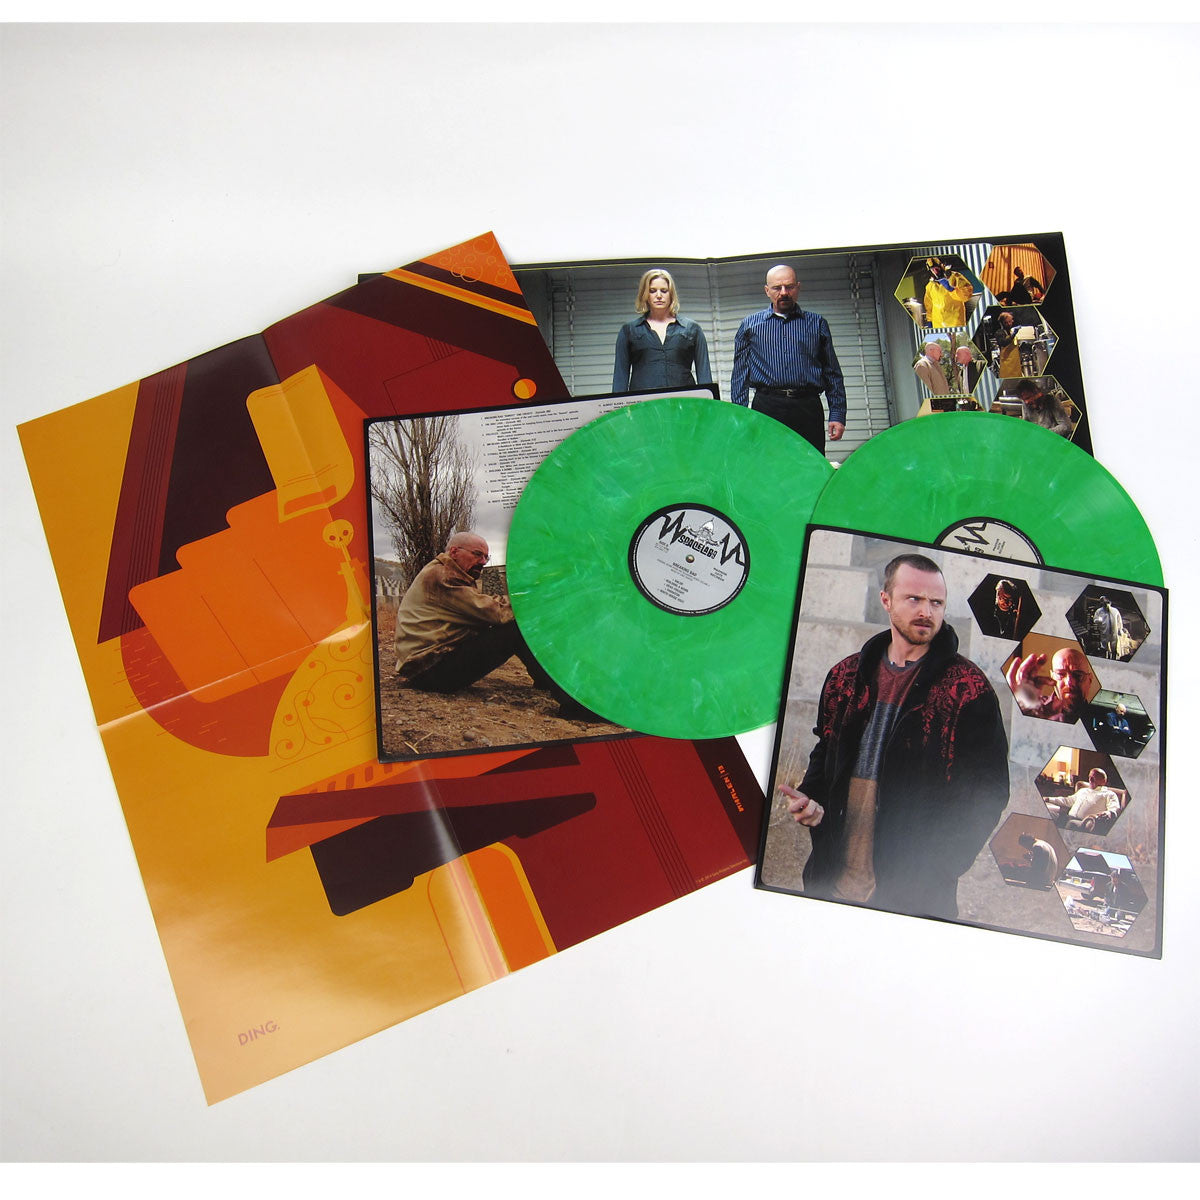 Dave Porter: Breaking Bad OST Vol.2 (Green Vinyl, Free Poster) Vinyl 2LP detail